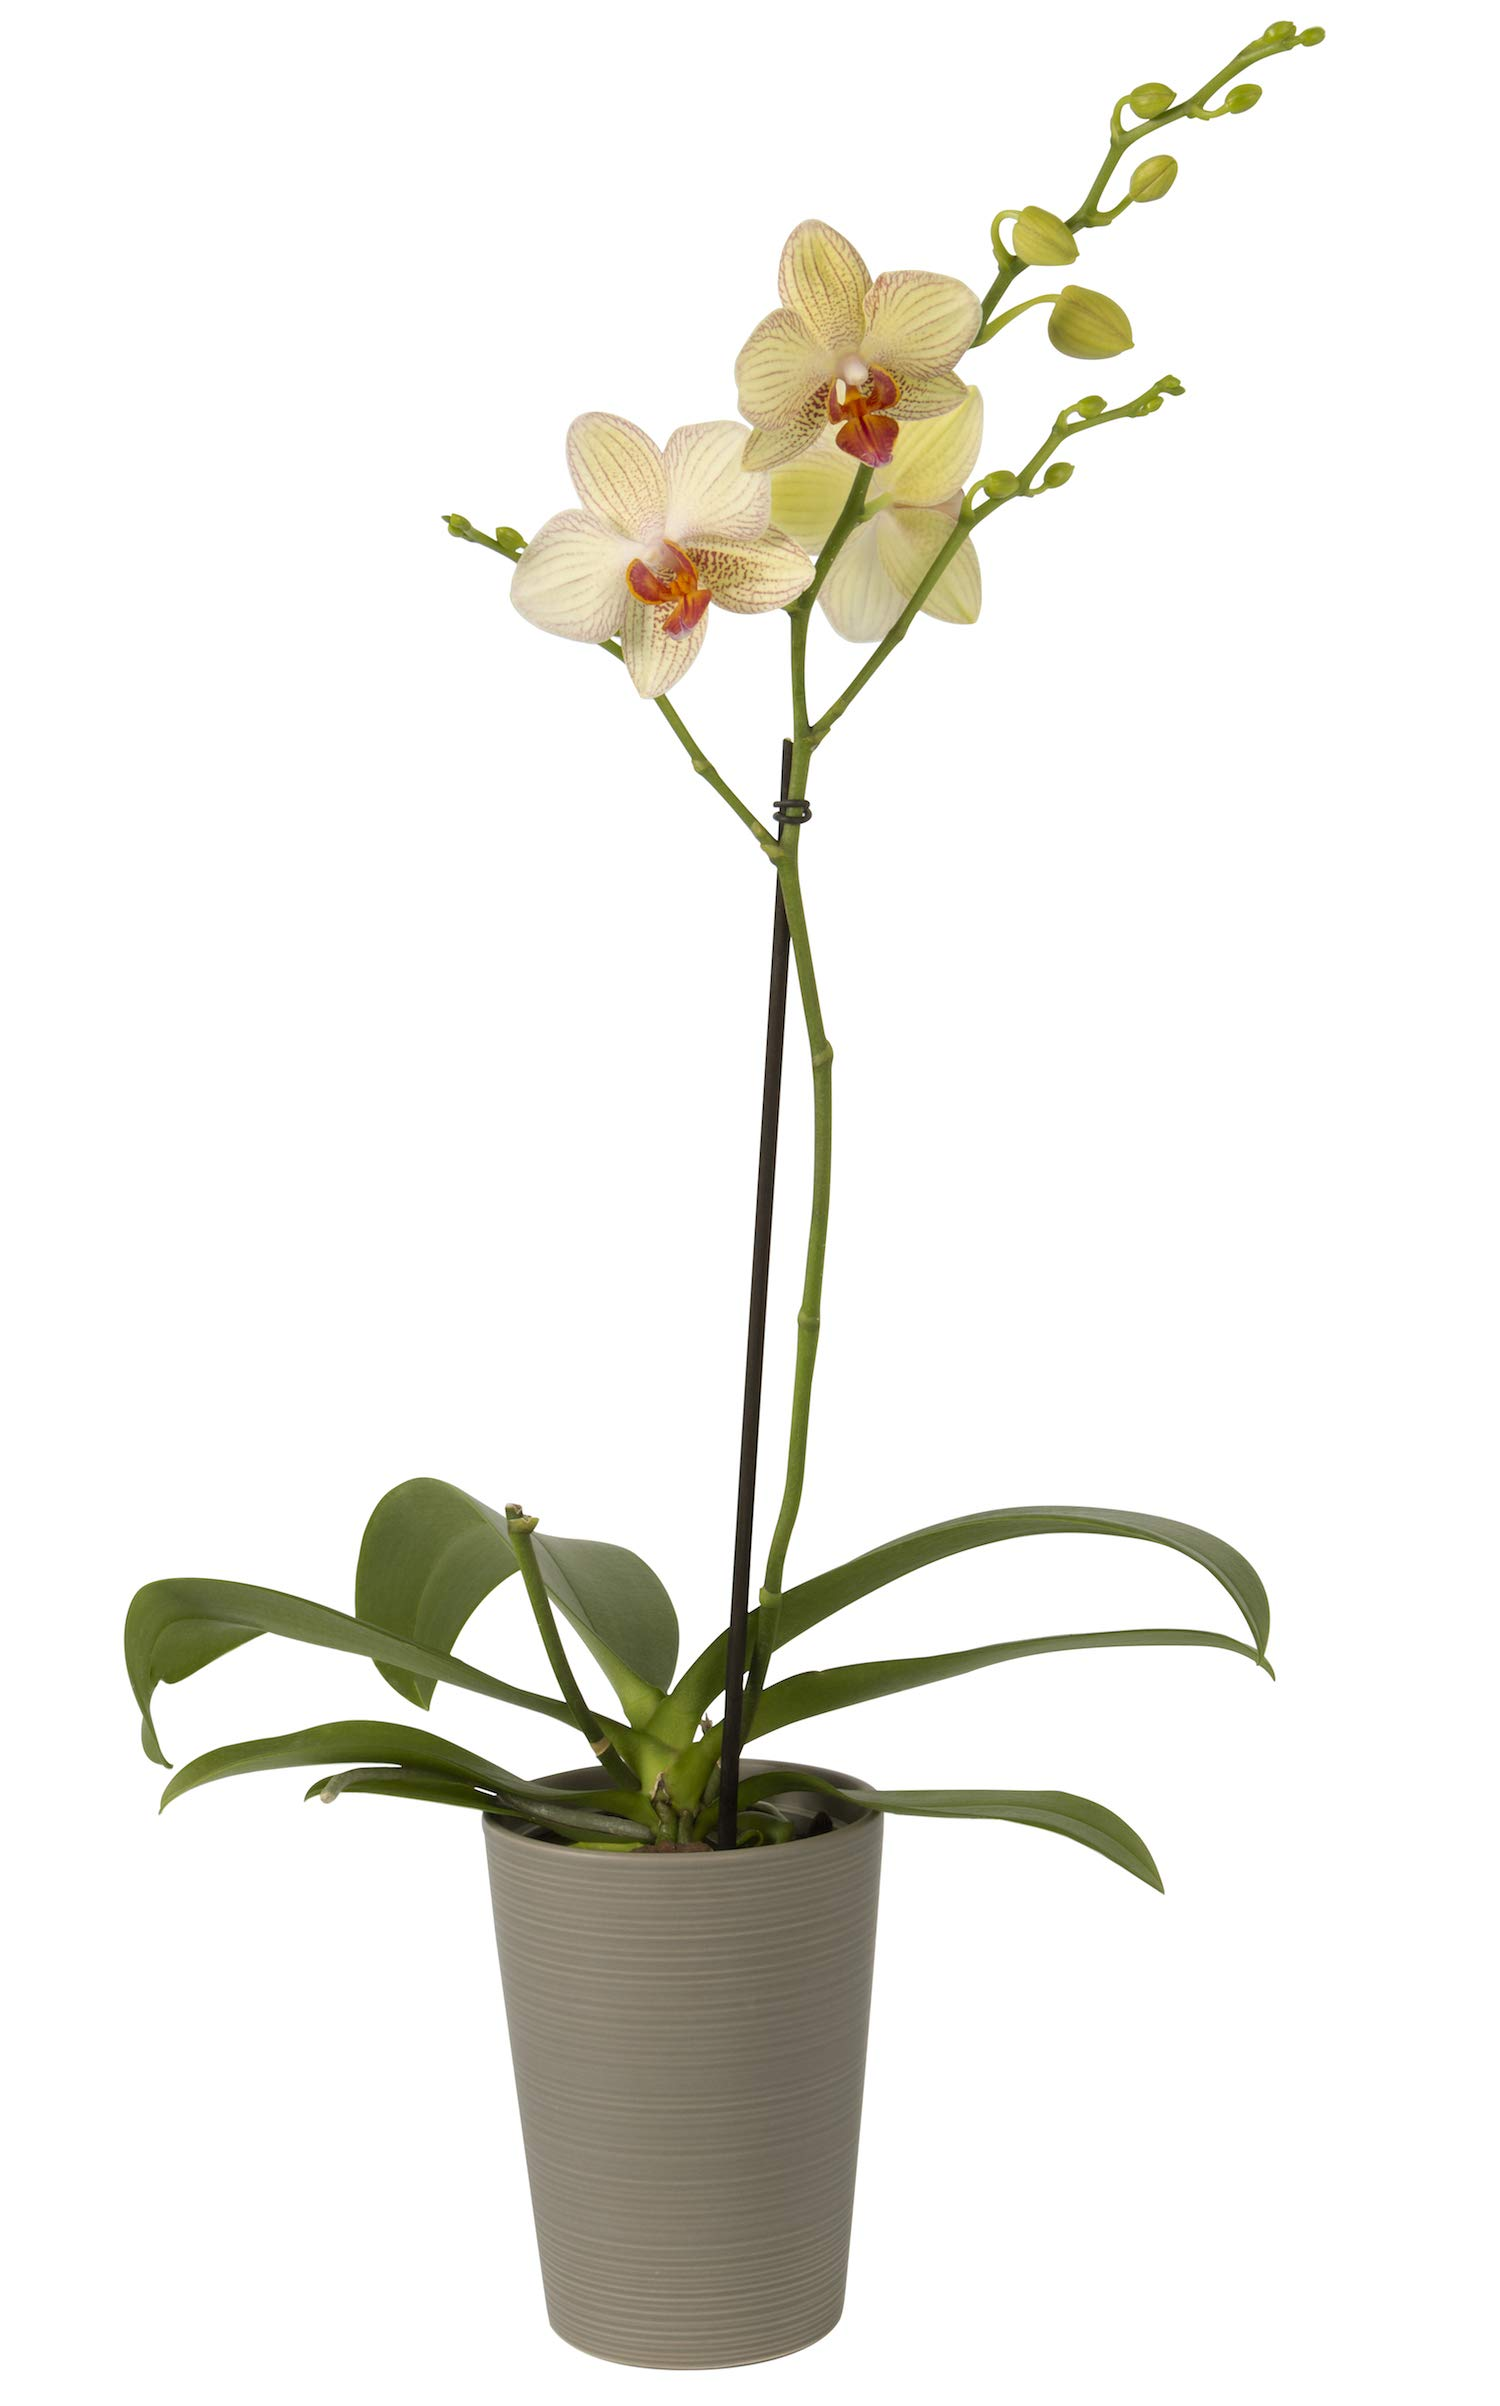 Color Orchids Live Blooming Single Stem Phalaenopsis Orchid Plant in Ceramic Pot, 20'' x 24'' Tall, Yellow Blooms